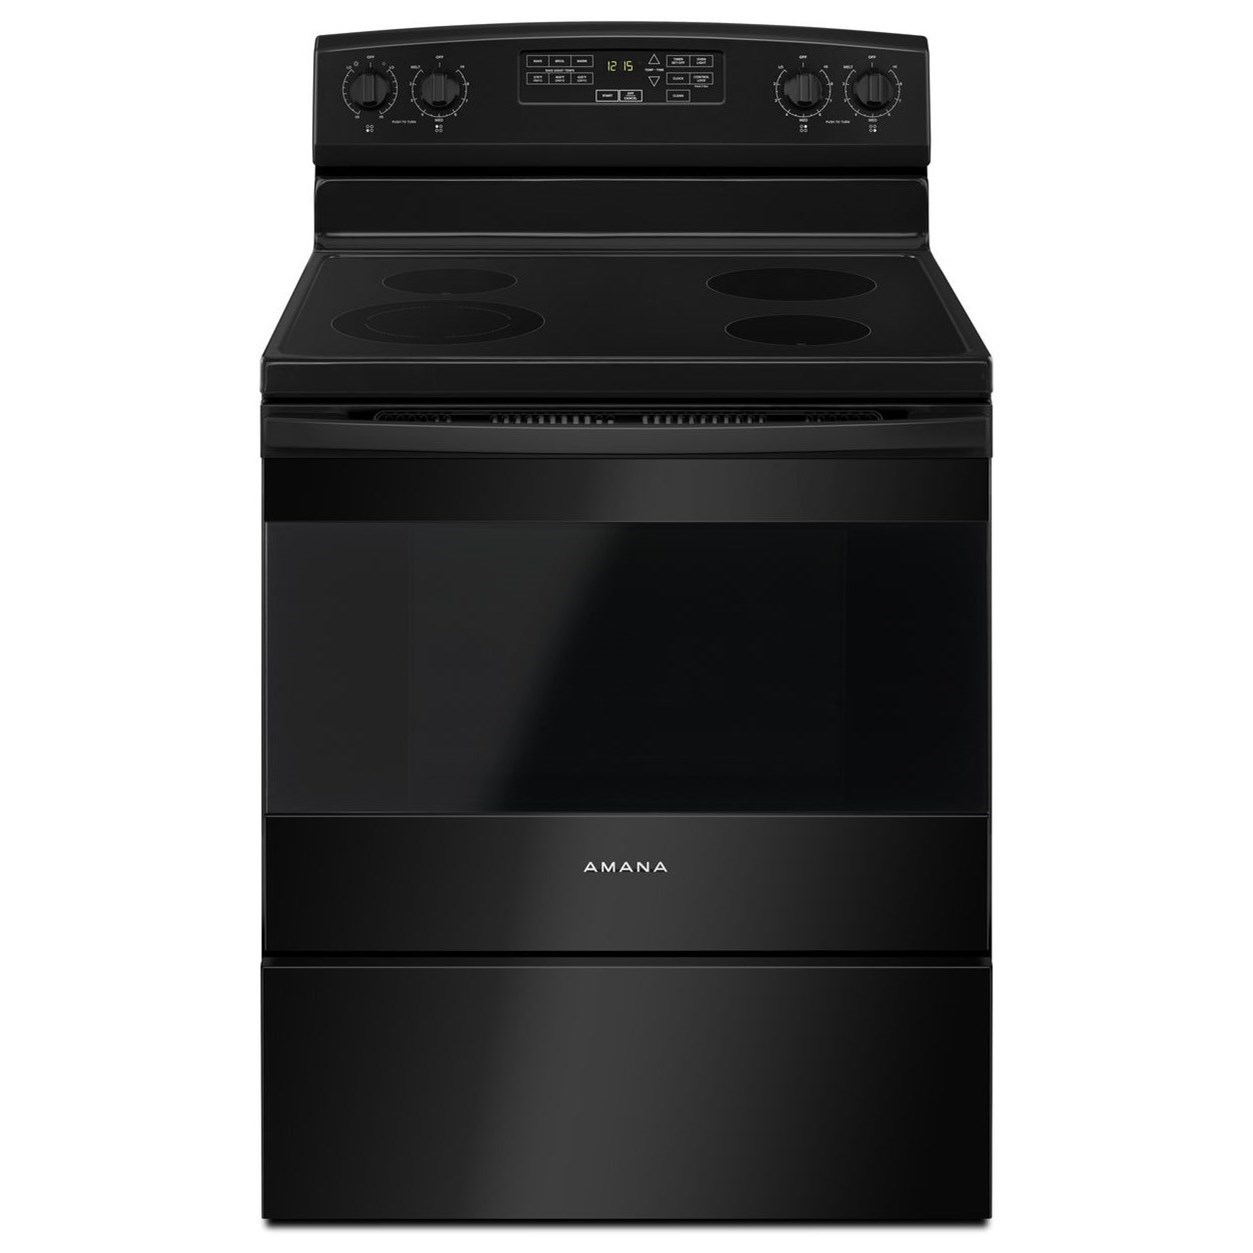 Amana 30 Inch Electric Range With Self Clean Option Ivan Smith Furniture Ranges Electric